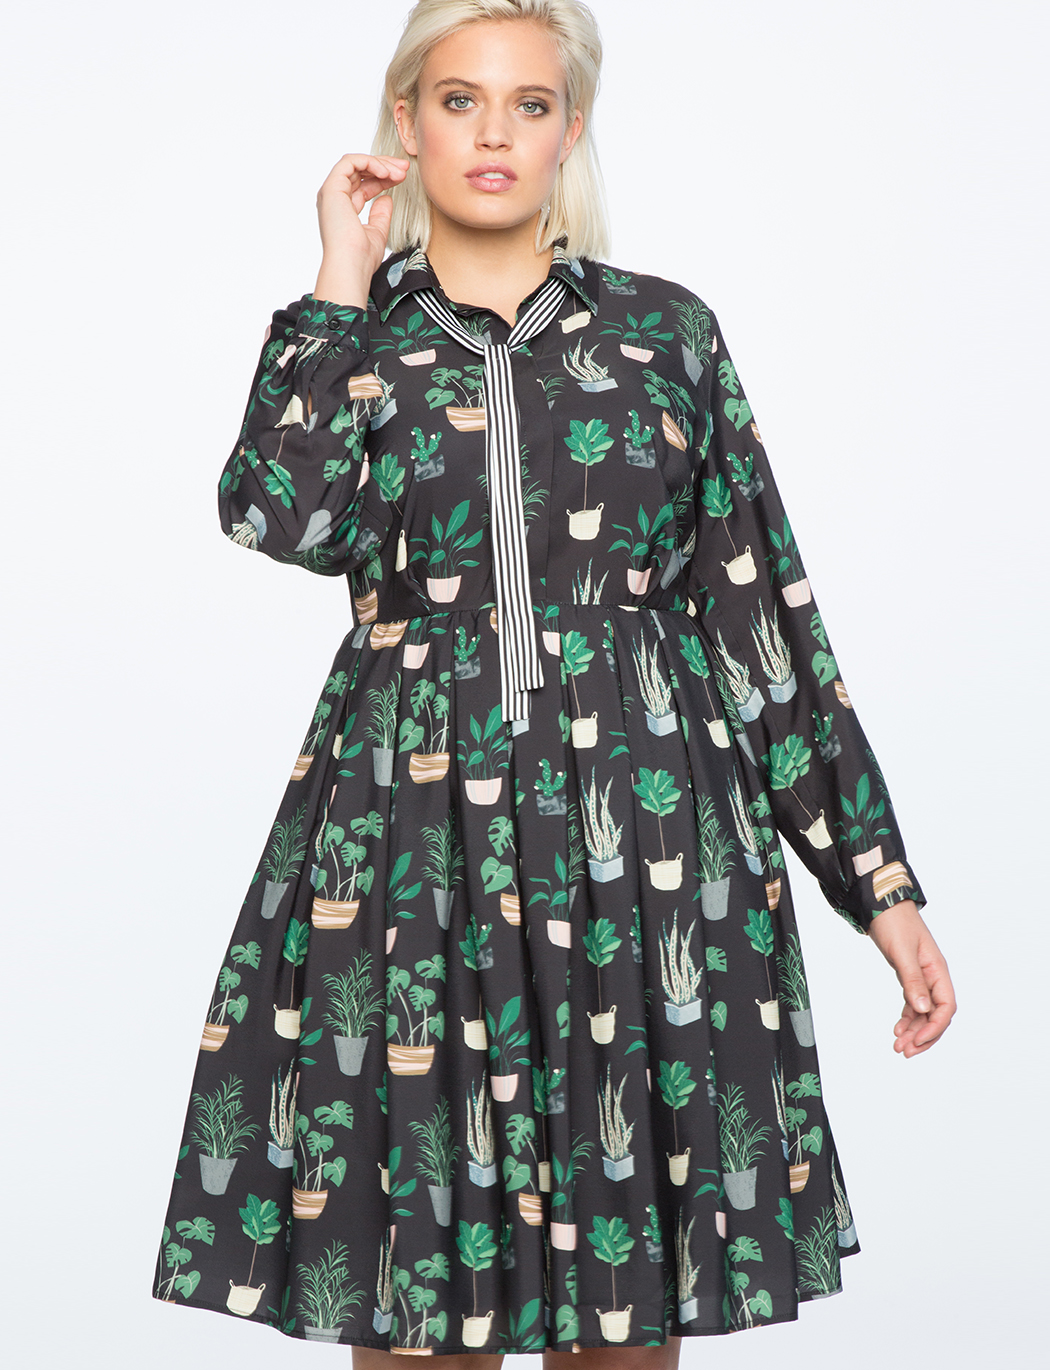 Long Sleeve Printed Fit and Flare Dress | Women\'s Plus Size Dresses ...